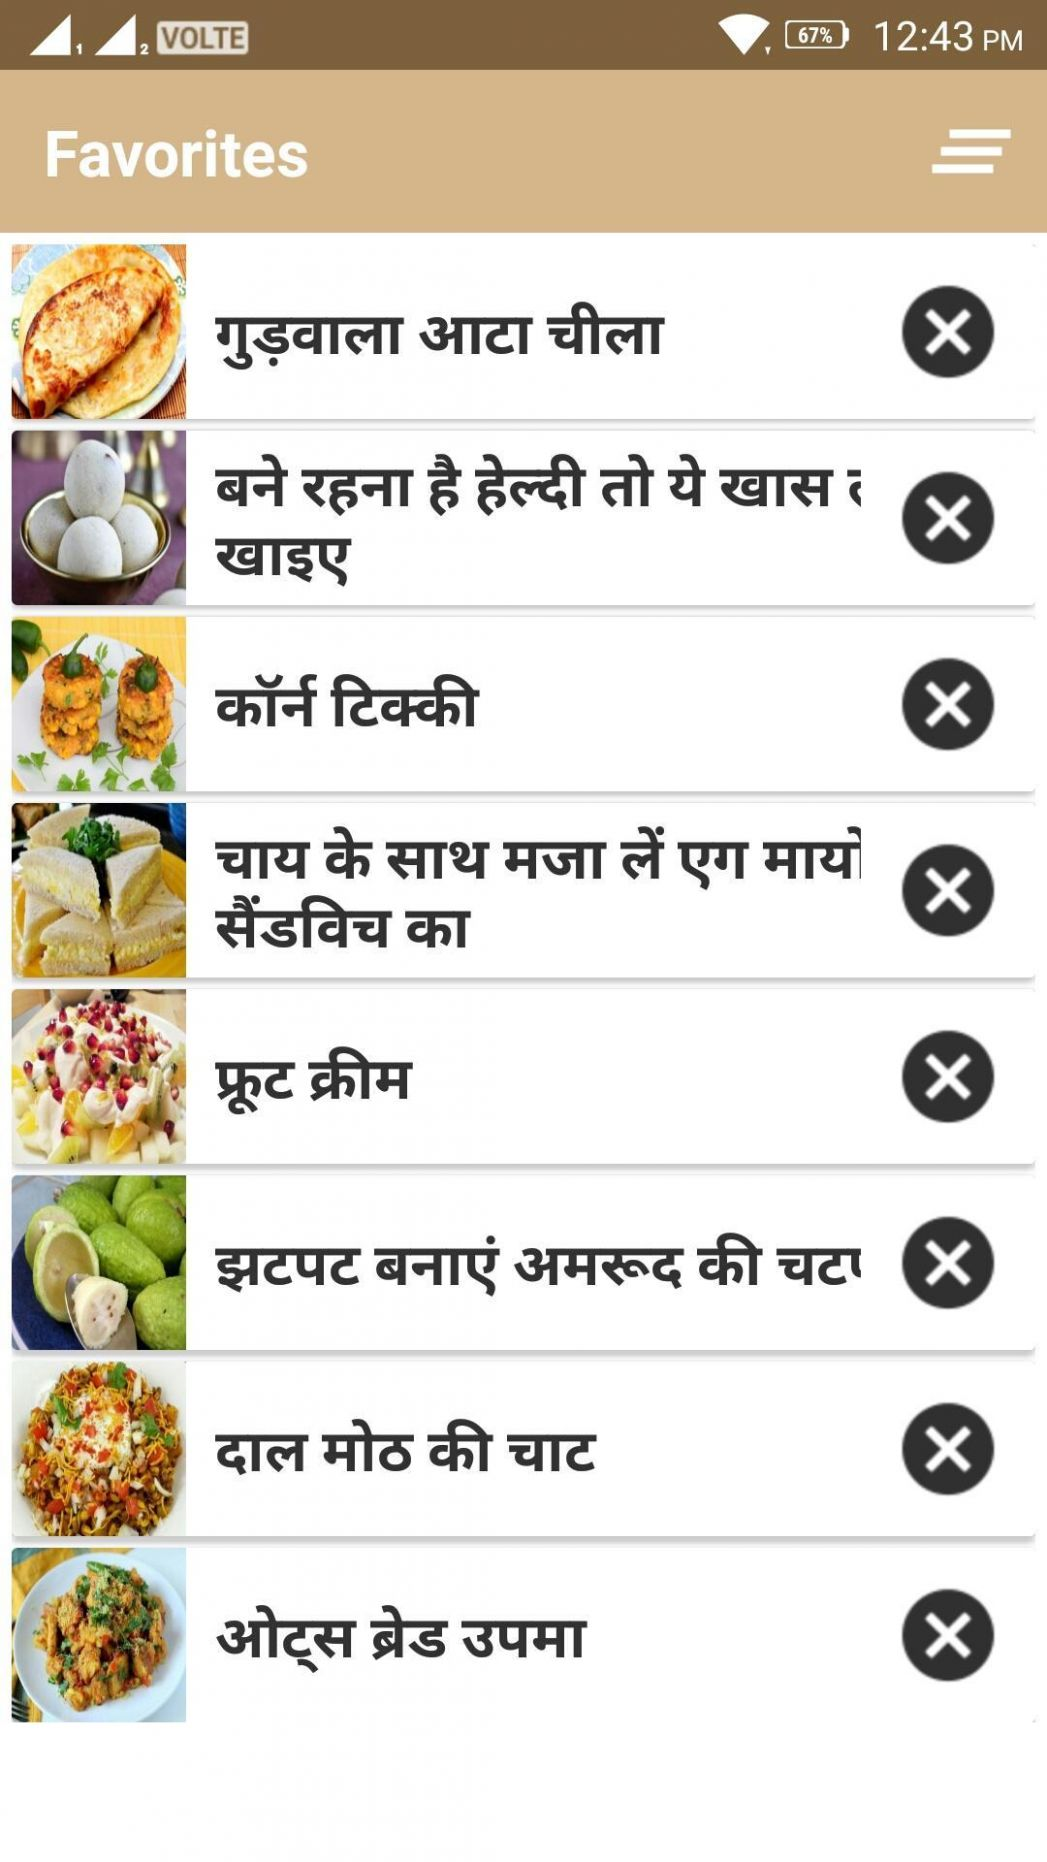 Healthy Food Recipe in Hindi for Android - APK Download - Healthy Recipes In Hindi